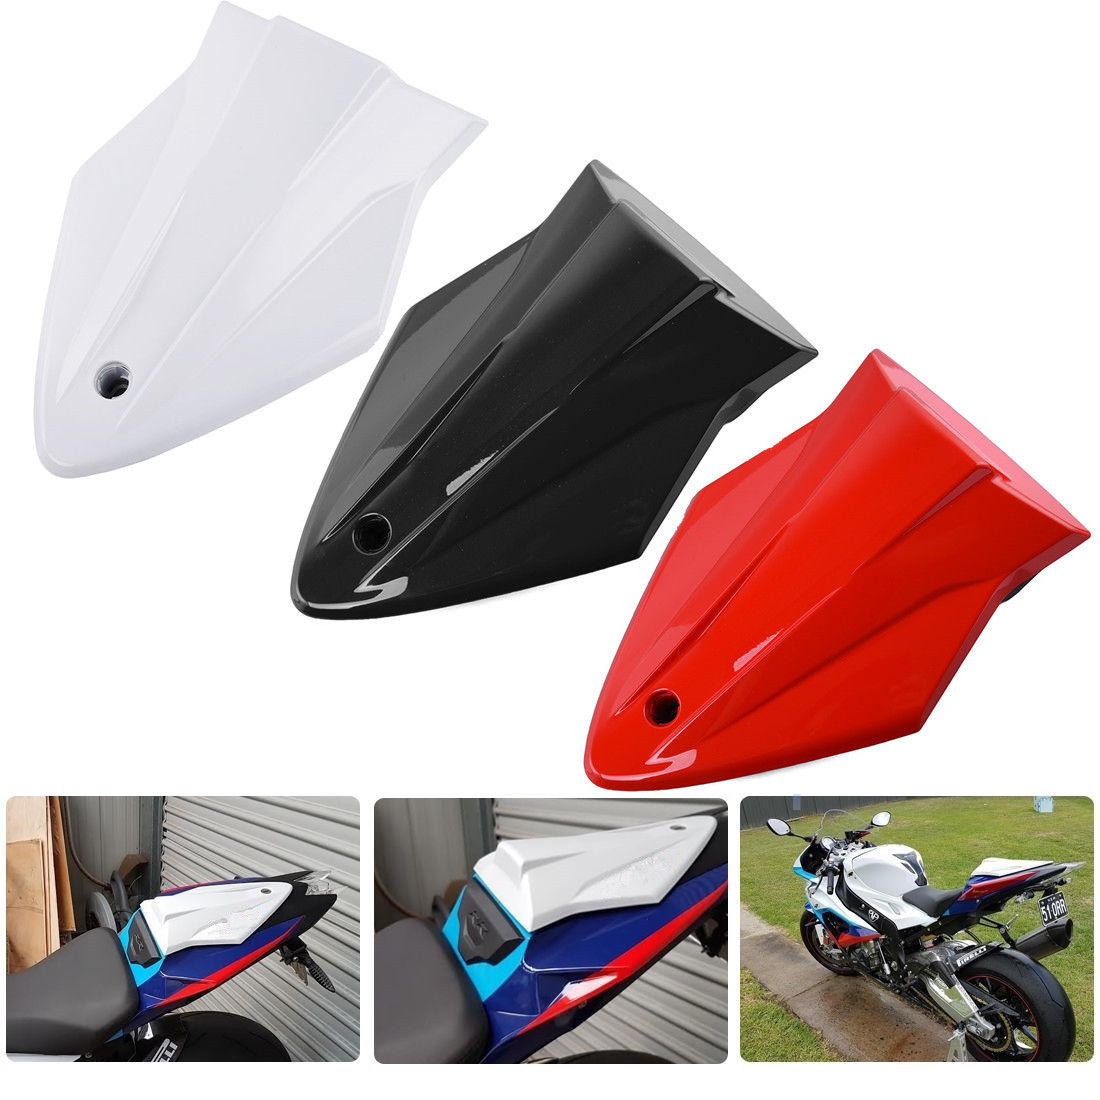 Motorcycle Pillion Solo Rear Seat Cover Cowl Fairing ABS for BMW S1000RR S1000 RR S1000R 2013 2014 2015 2016 Black Red White image